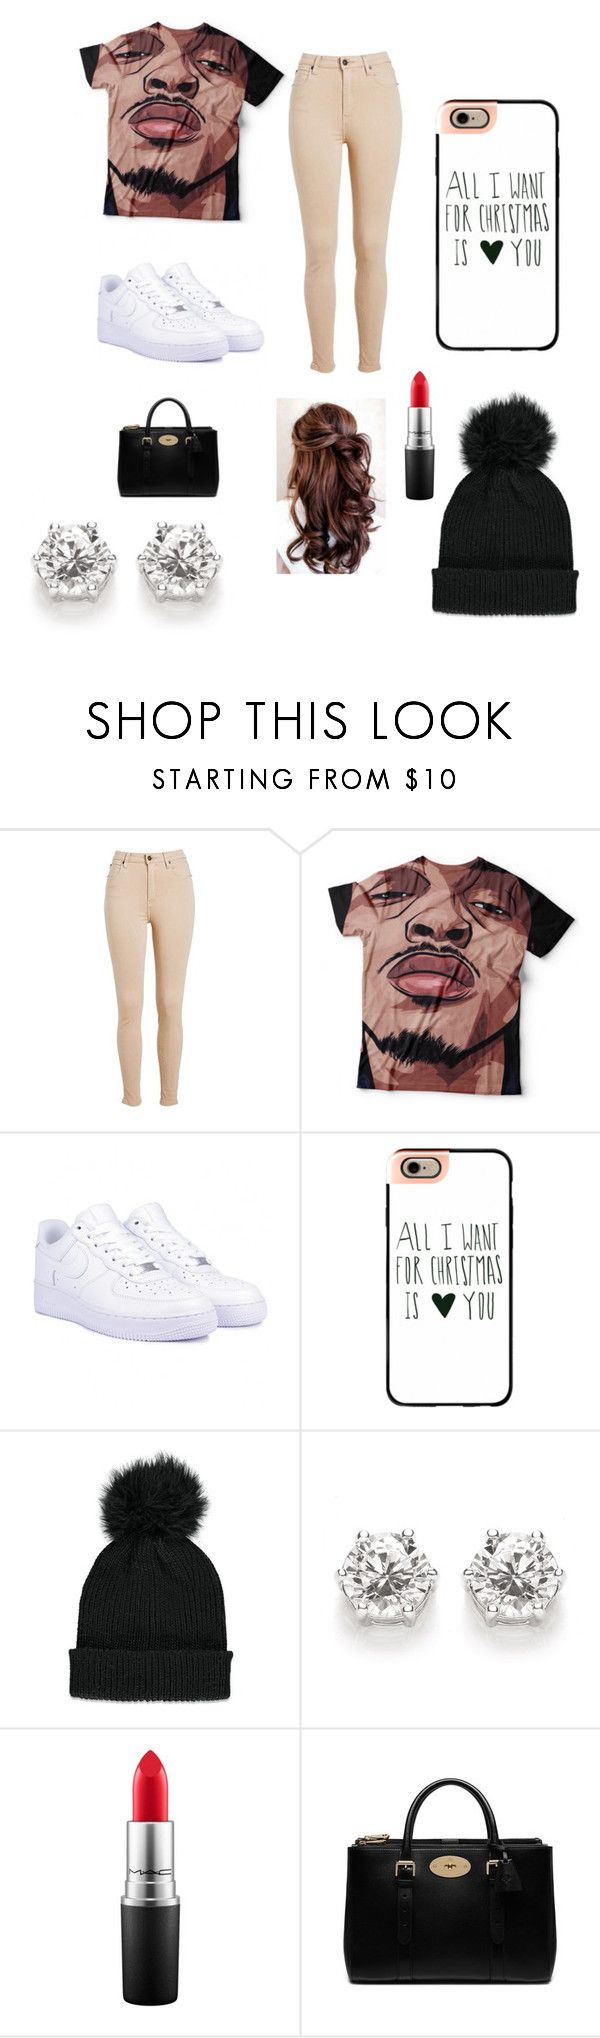 """""""August Alsina Concert featuring diamond earrings"""" by shakira-luvs-august-alsina ❤ liked on Polyvore featuring NIKE, Casetify, Forever 21, MAC Cosmetics and Mulberry"""